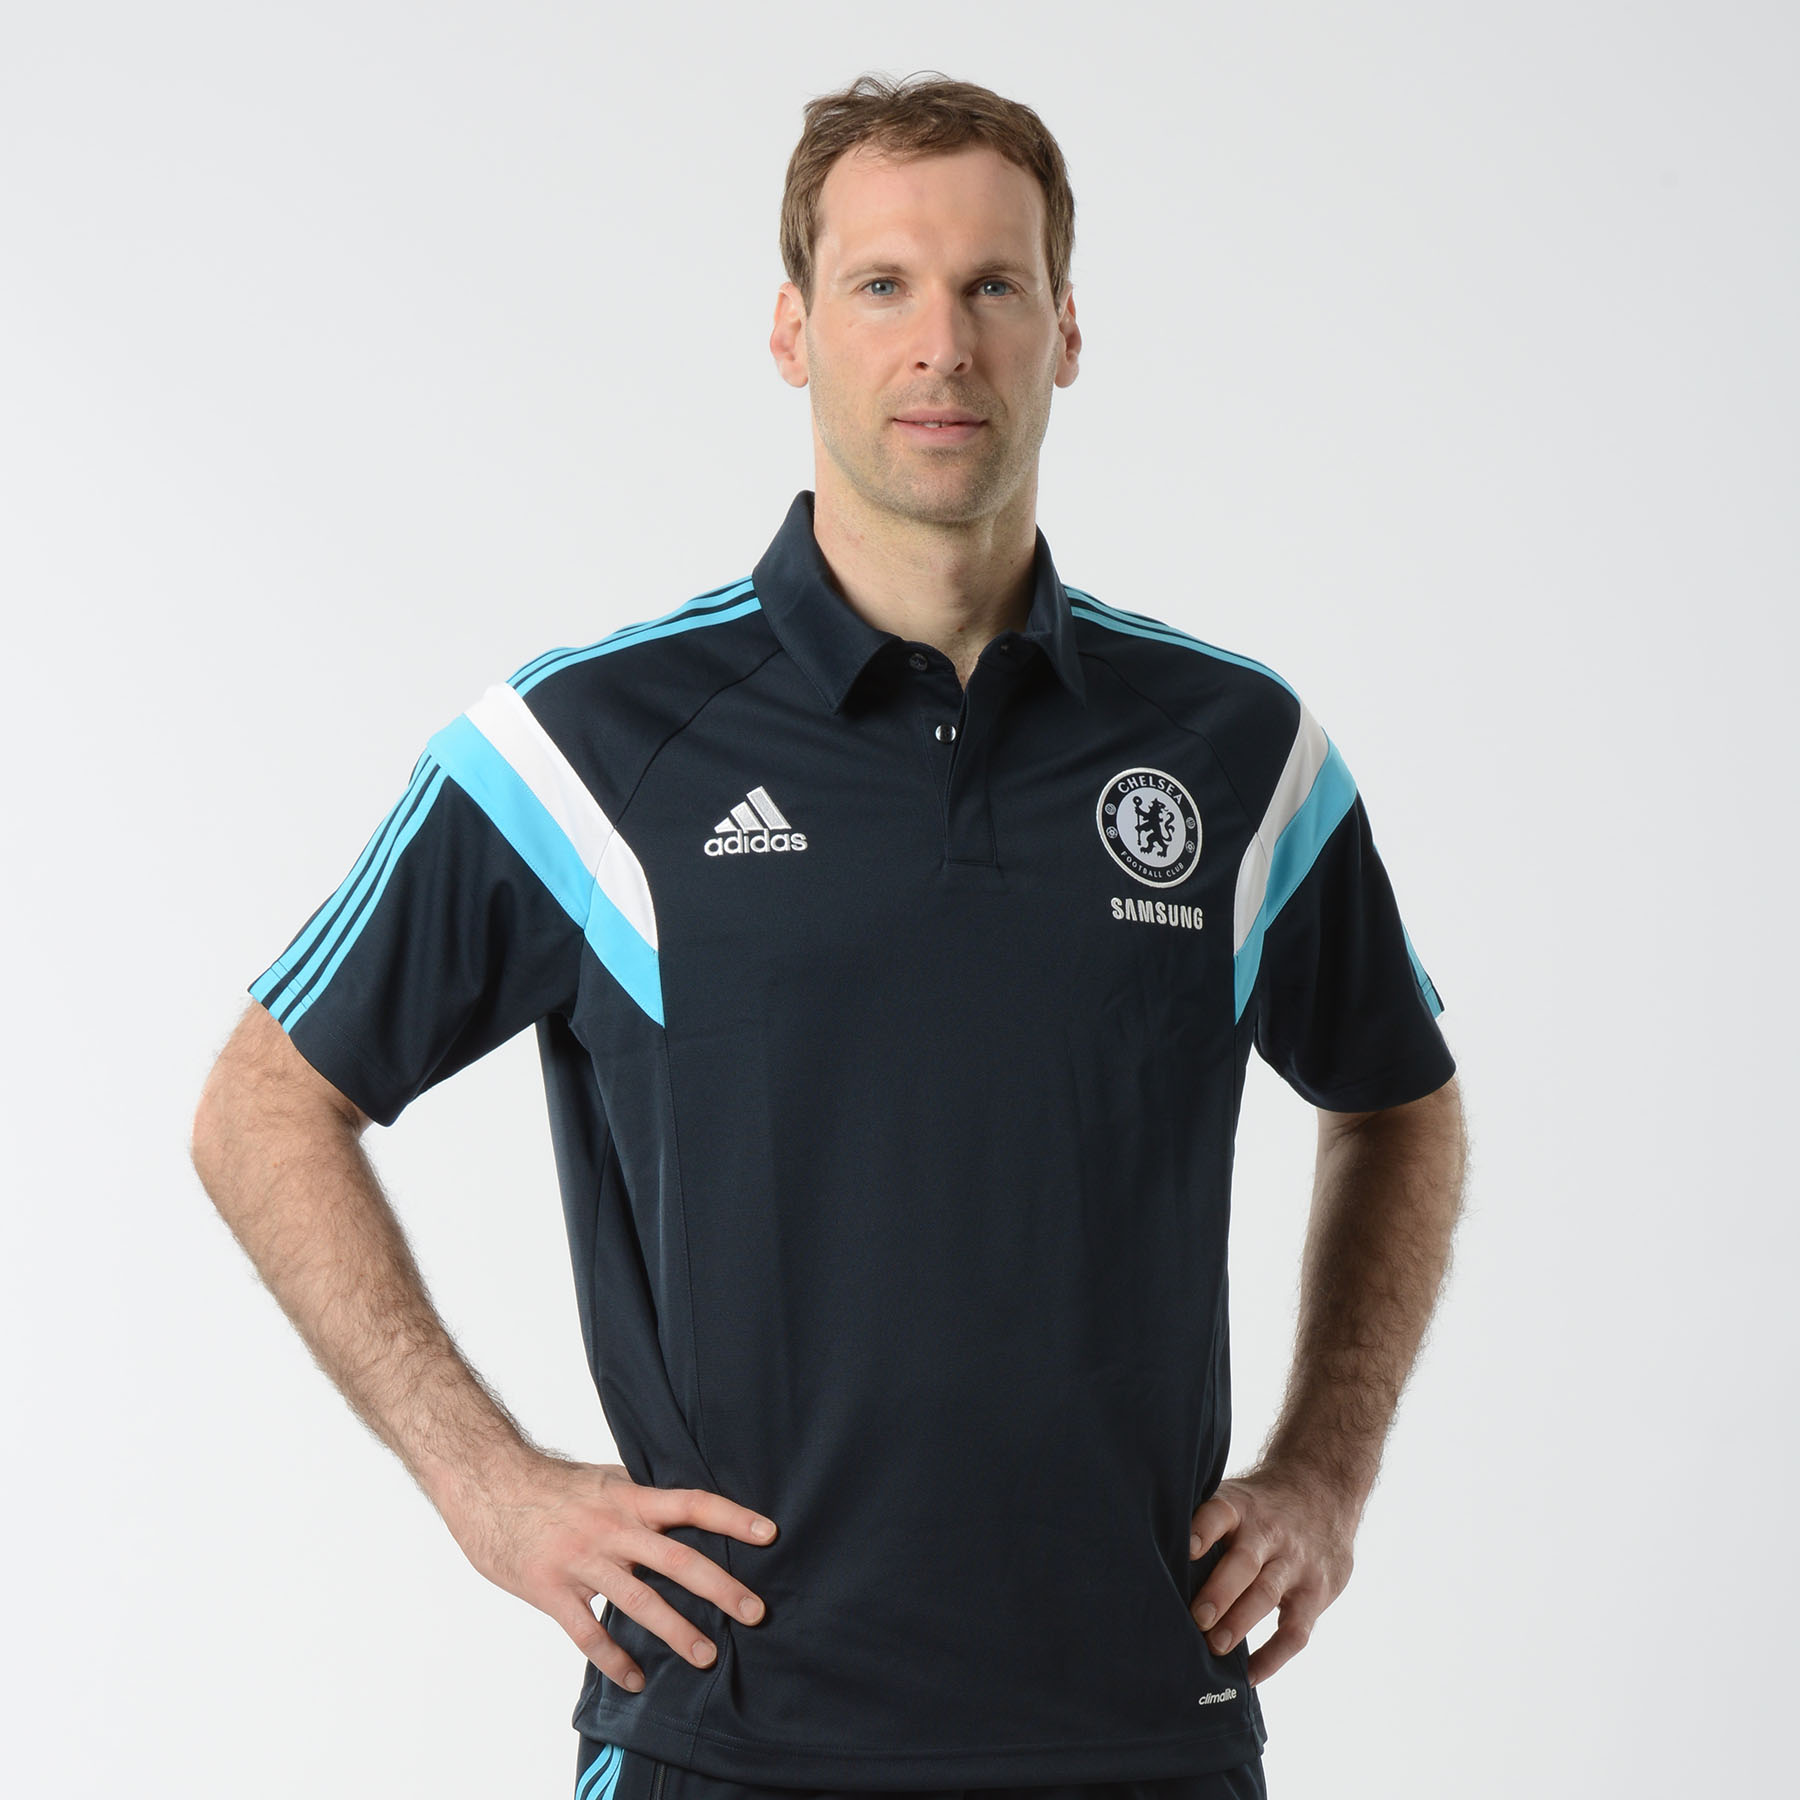 Chelsea Training Polo Dark Blue Enjoy a casual look casual with this dark blue Chelsea Training Polo. Made from soft, lightweight fabric, you can enjoy superior moisture management when you're out training